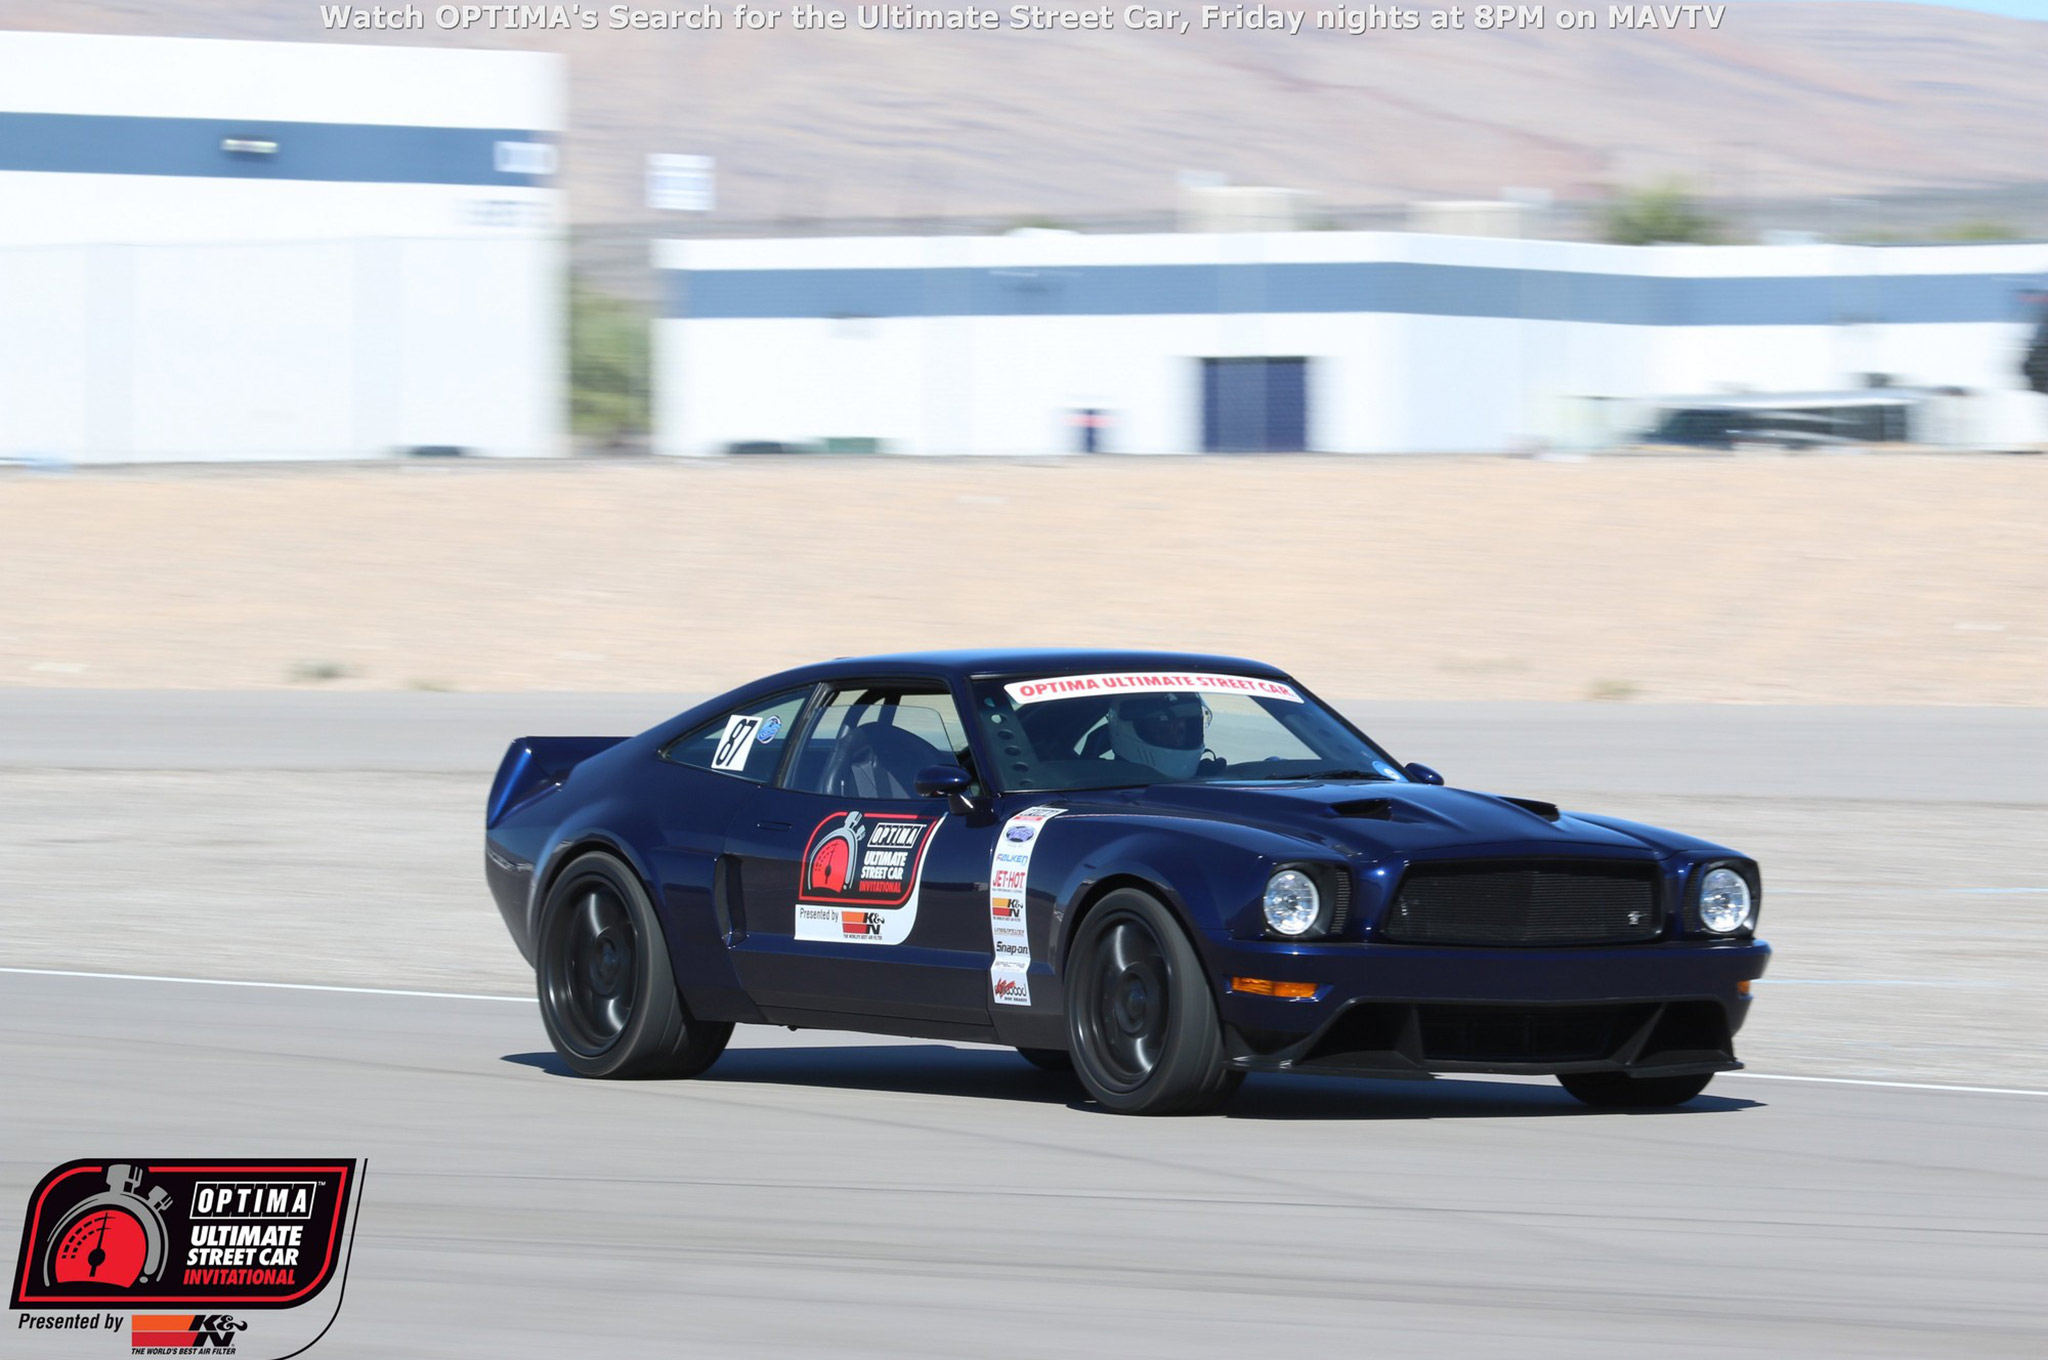 Brett Behrens' 1978 Ford Mustang II was one of a handful of vehicles selected off the SEMA Show floor to compete in the event. It was a tall task for the Triton V10-powered pony car and it performed far better than most. The Mustang captured second place in the Lingenfelter Design & Engineering Challenge and finished 46th overall.